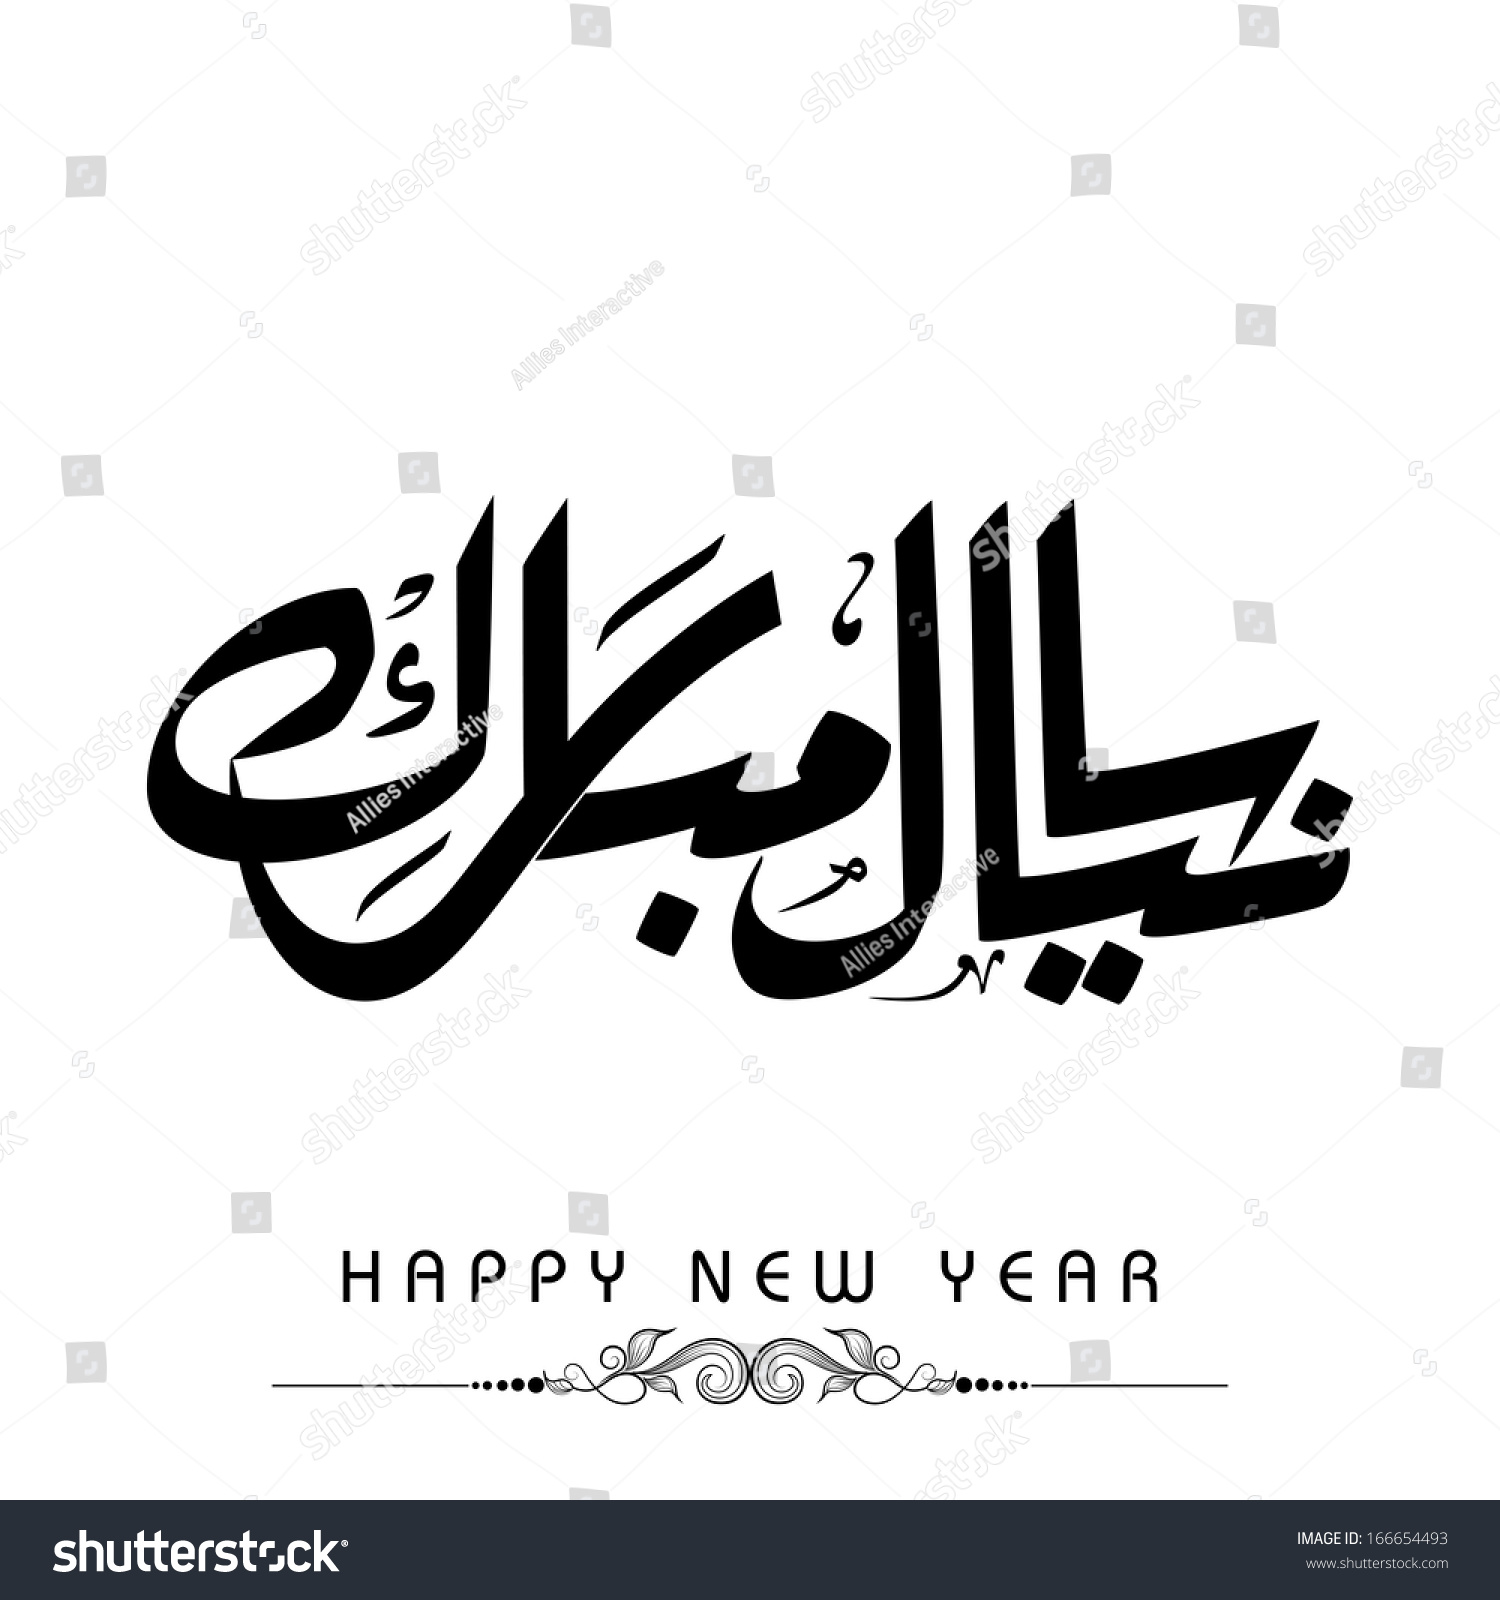 Urdu Calligraphy Font Free Download Urdu Calligraphy Text Happy New Year Stock Vector Royalty Free